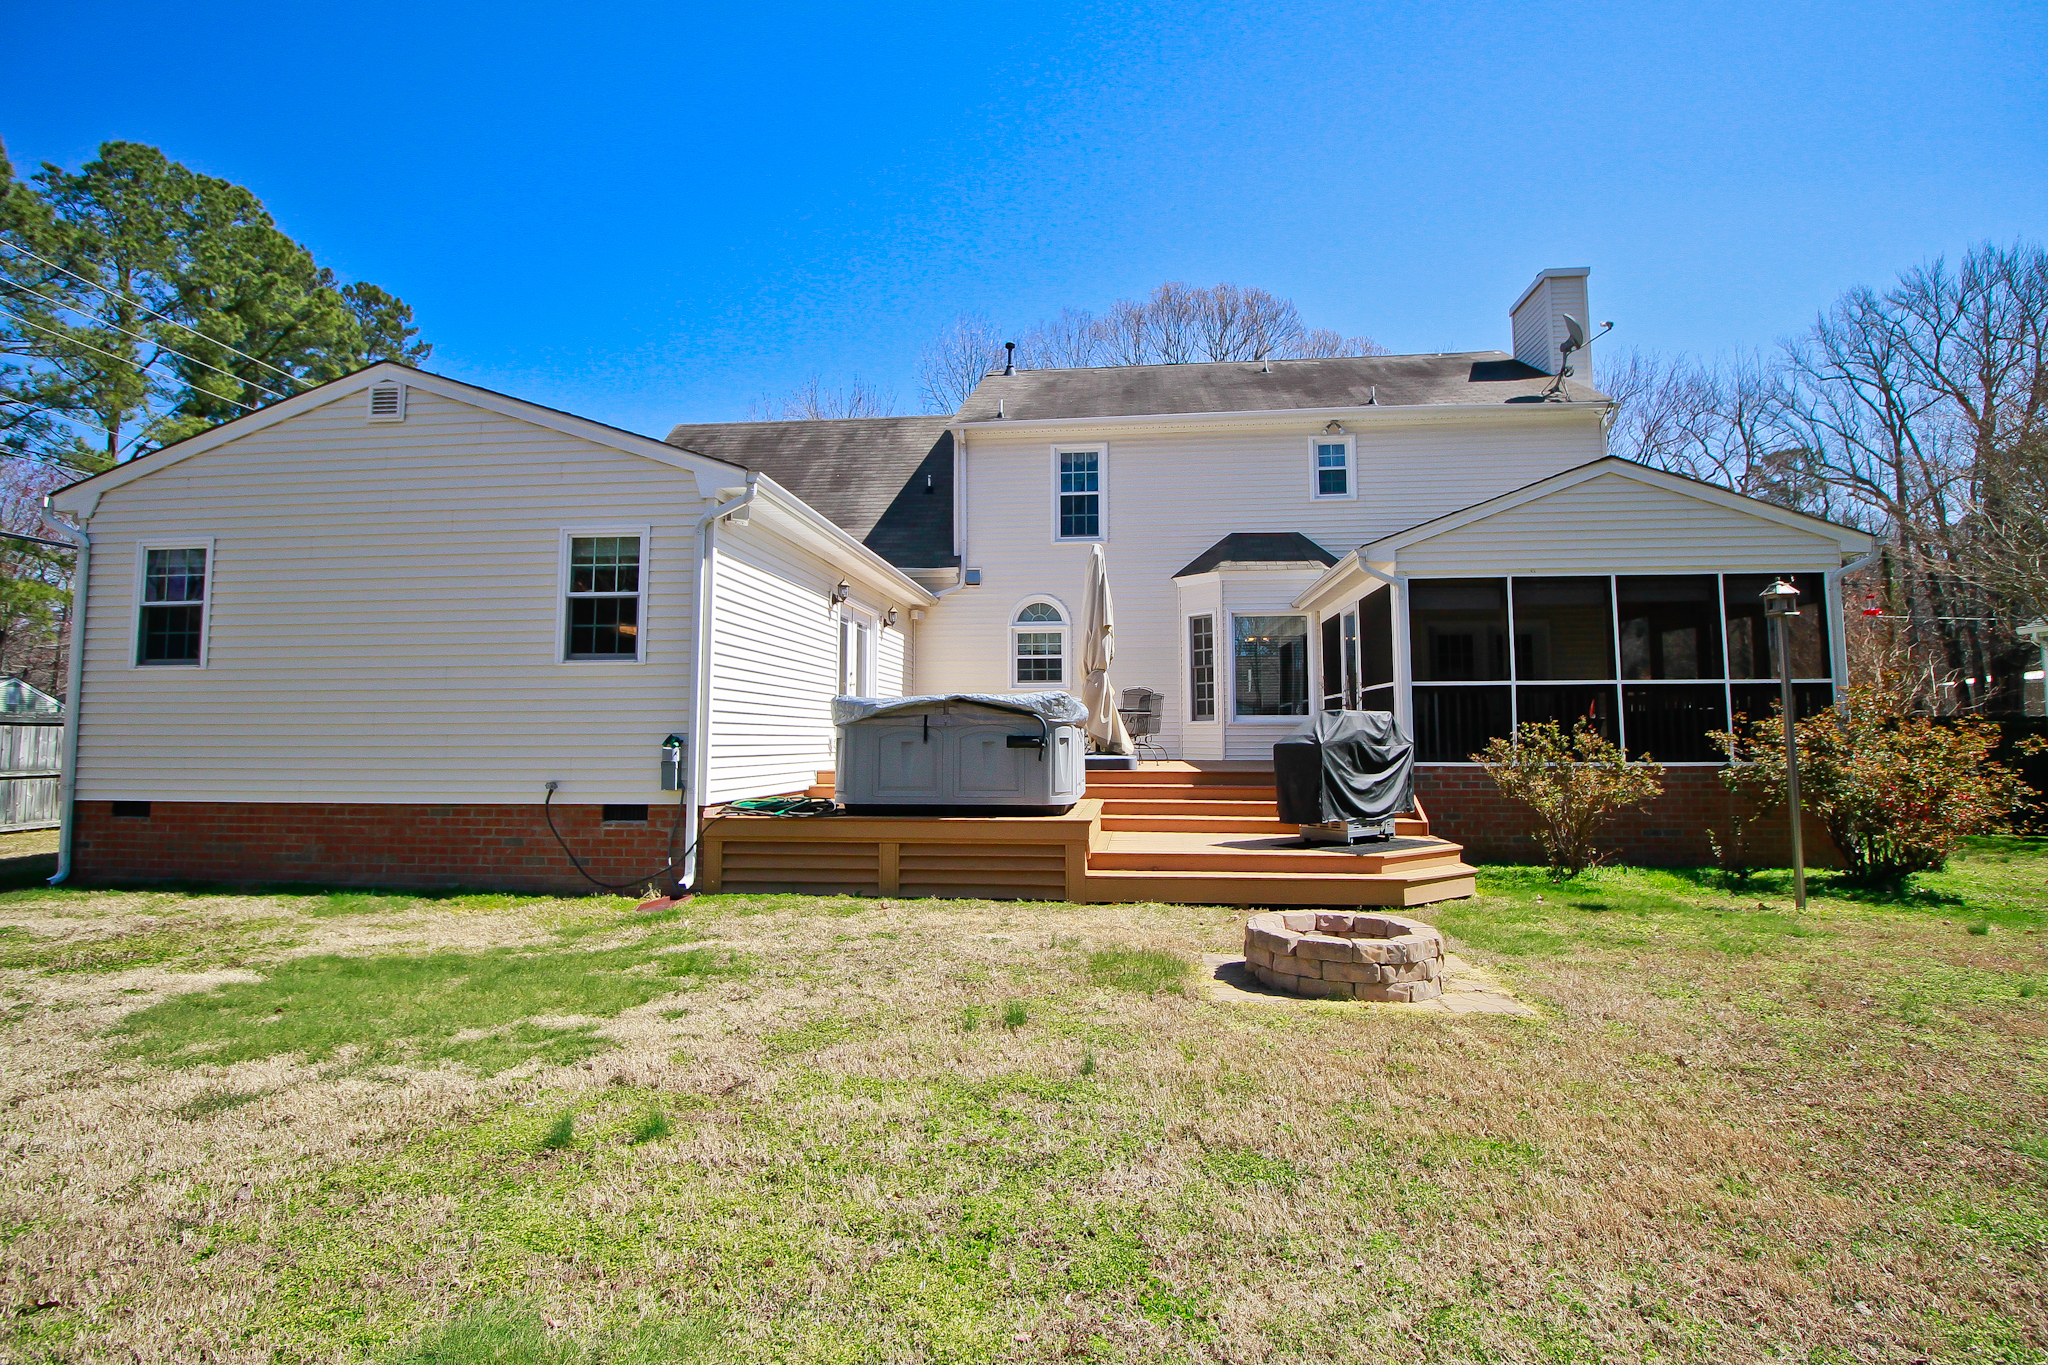 101 TABB LANE - YORK COUNTY HOME WITH 2 MASTER SUITES